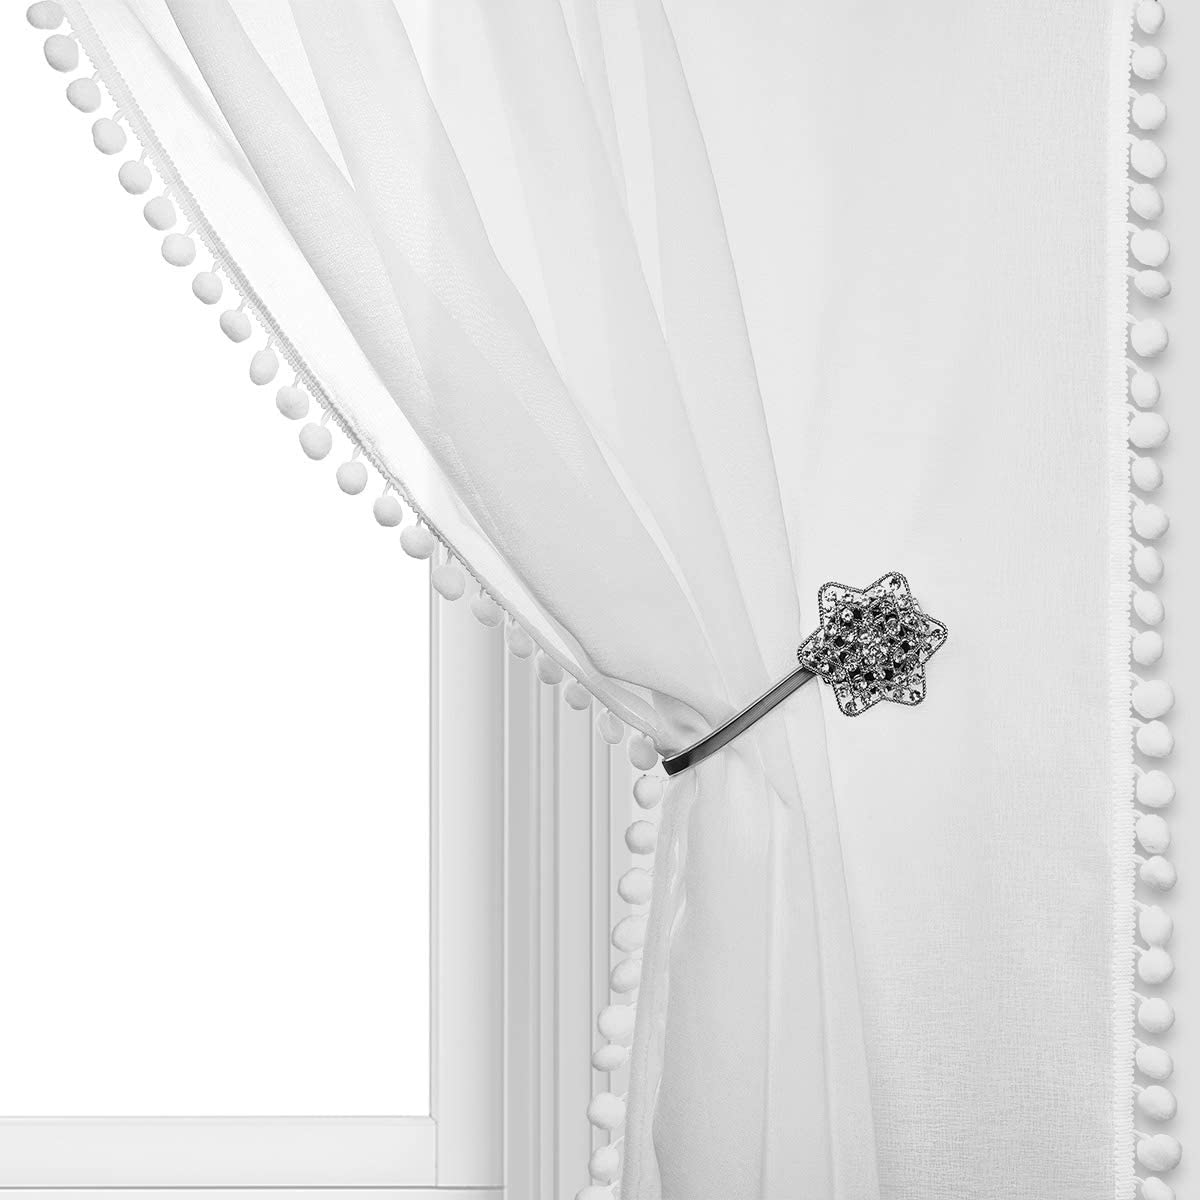 NINETREX Sheer Curtains with Pom pom Linen Look for Bedroom and Living Room Pocket Voile Semi-Sheer Curtains Set of 2 Curtain Panels (54 X 84, White)